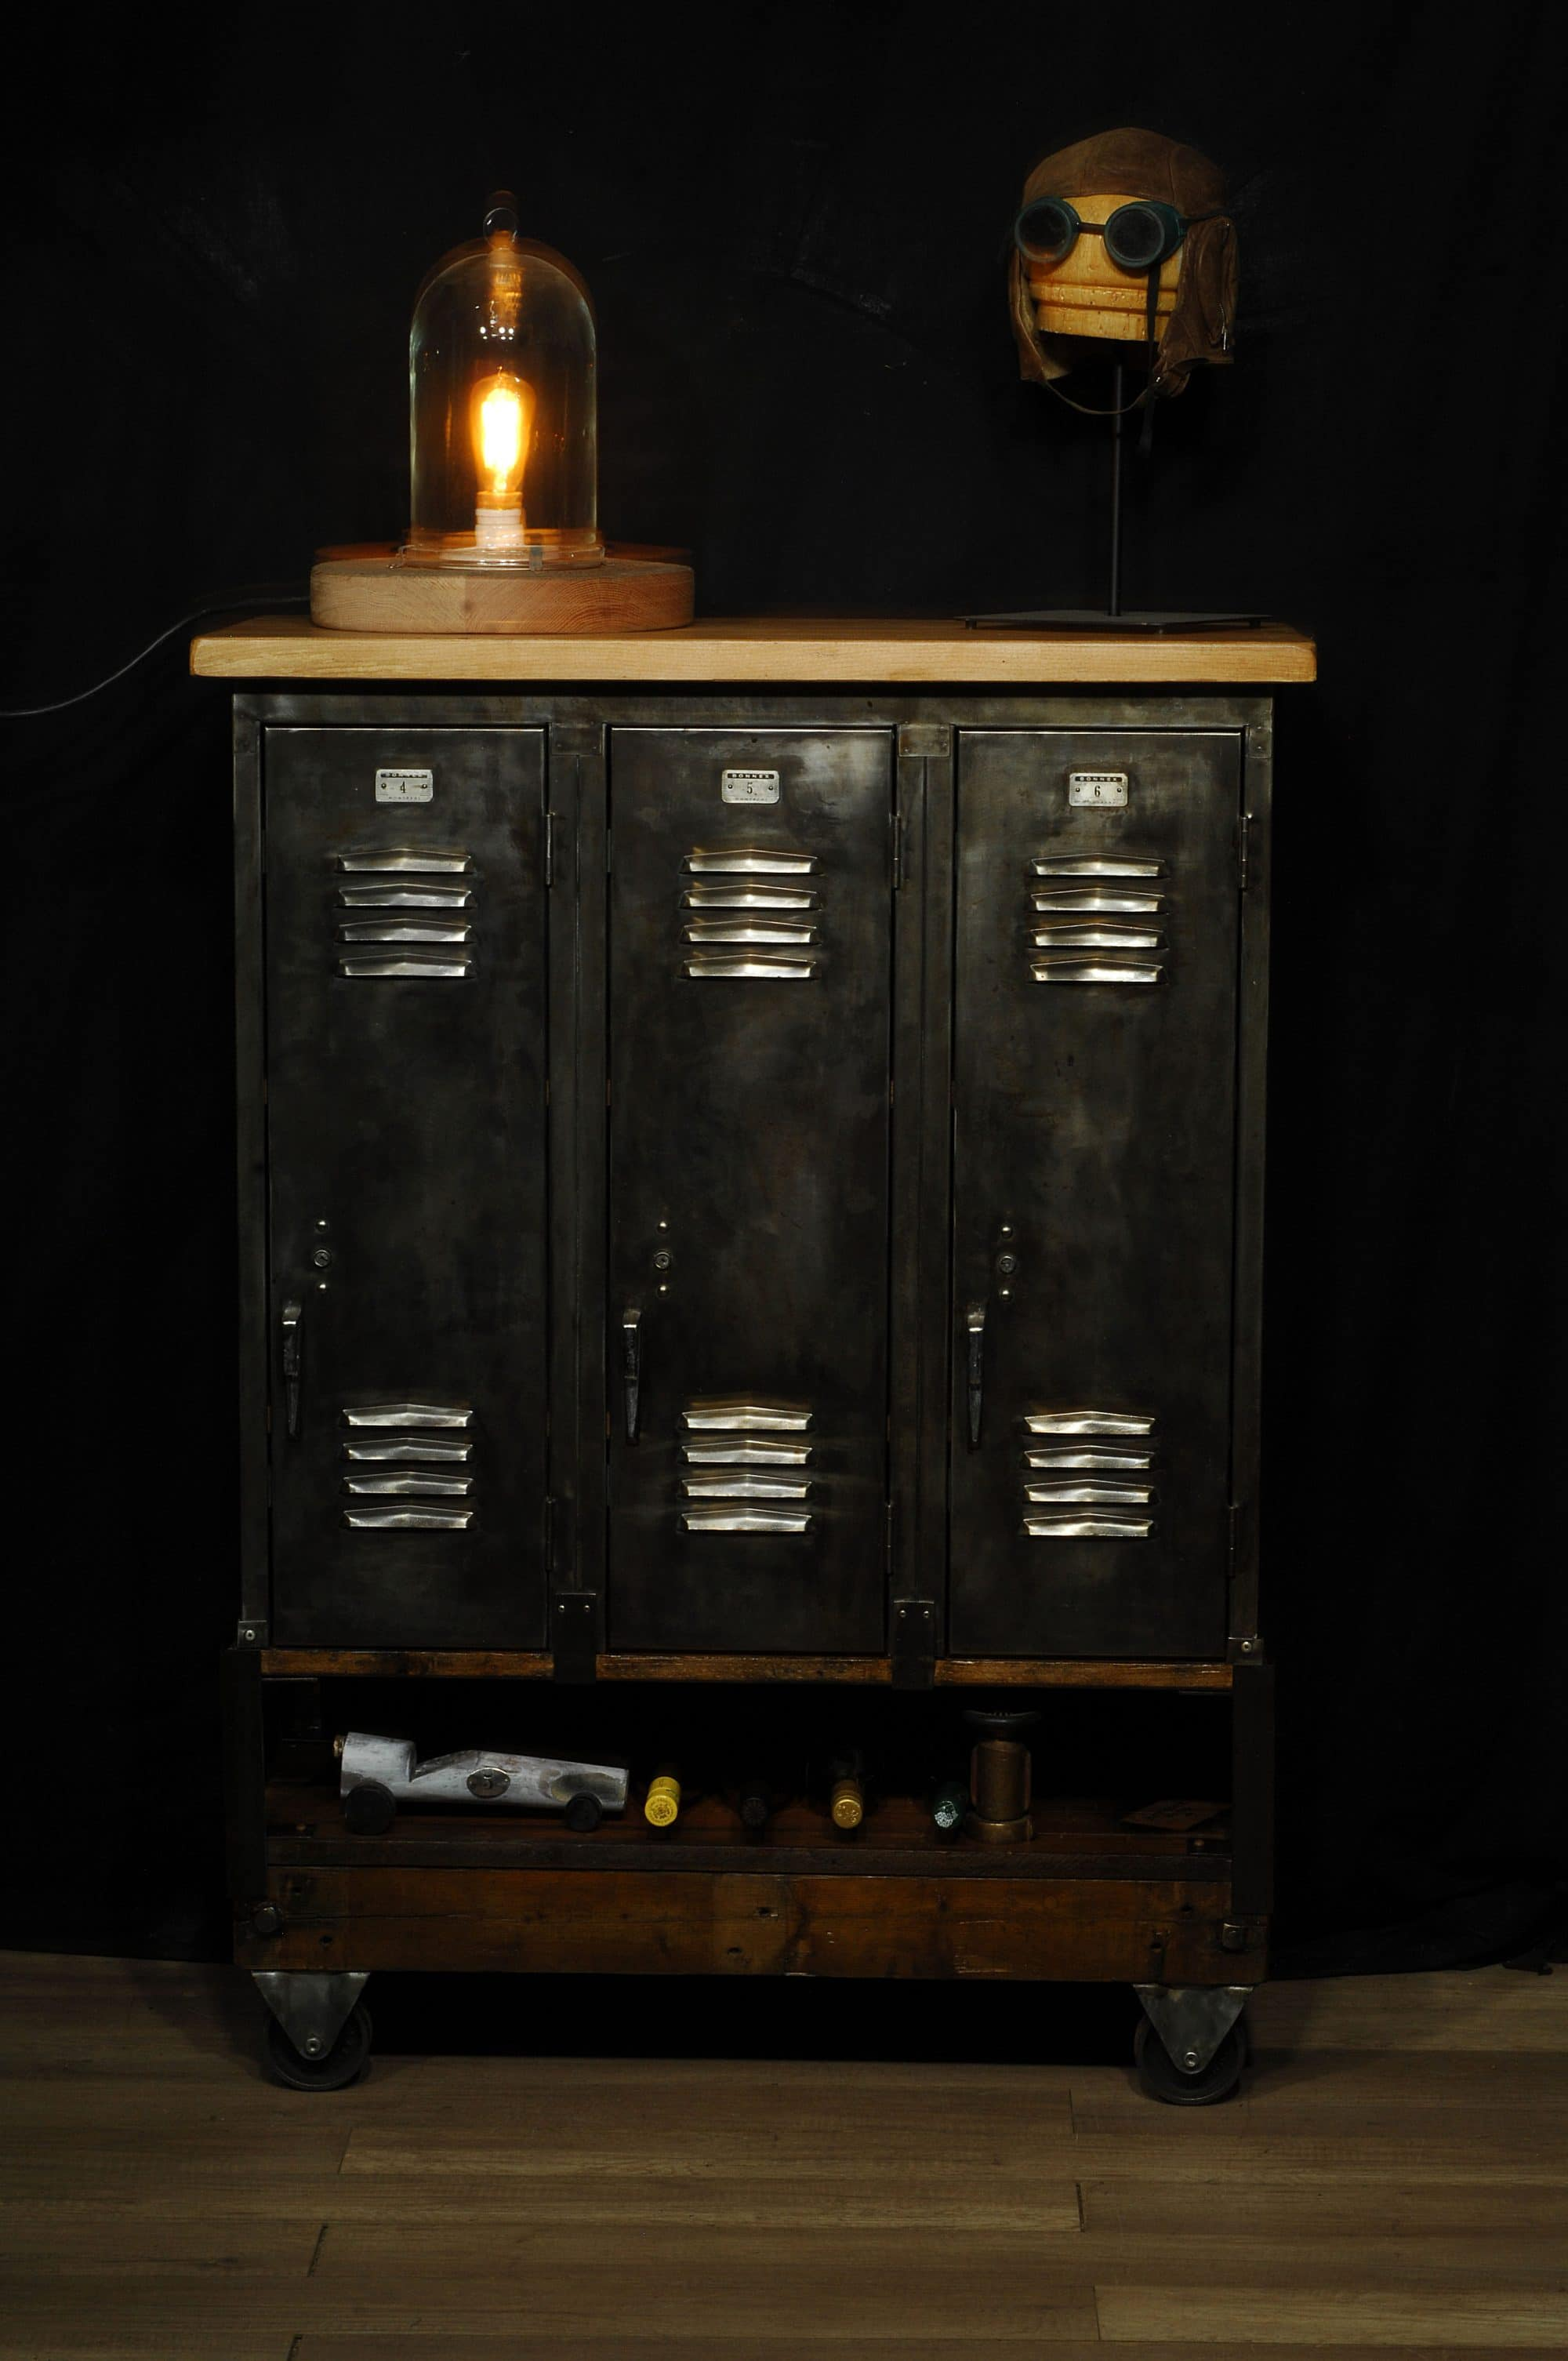 Meuble Bois Metal Industriel Casier Industriel De Rangement Avec Tablette Industrial Locker Storage Unit 2 Chance Deco